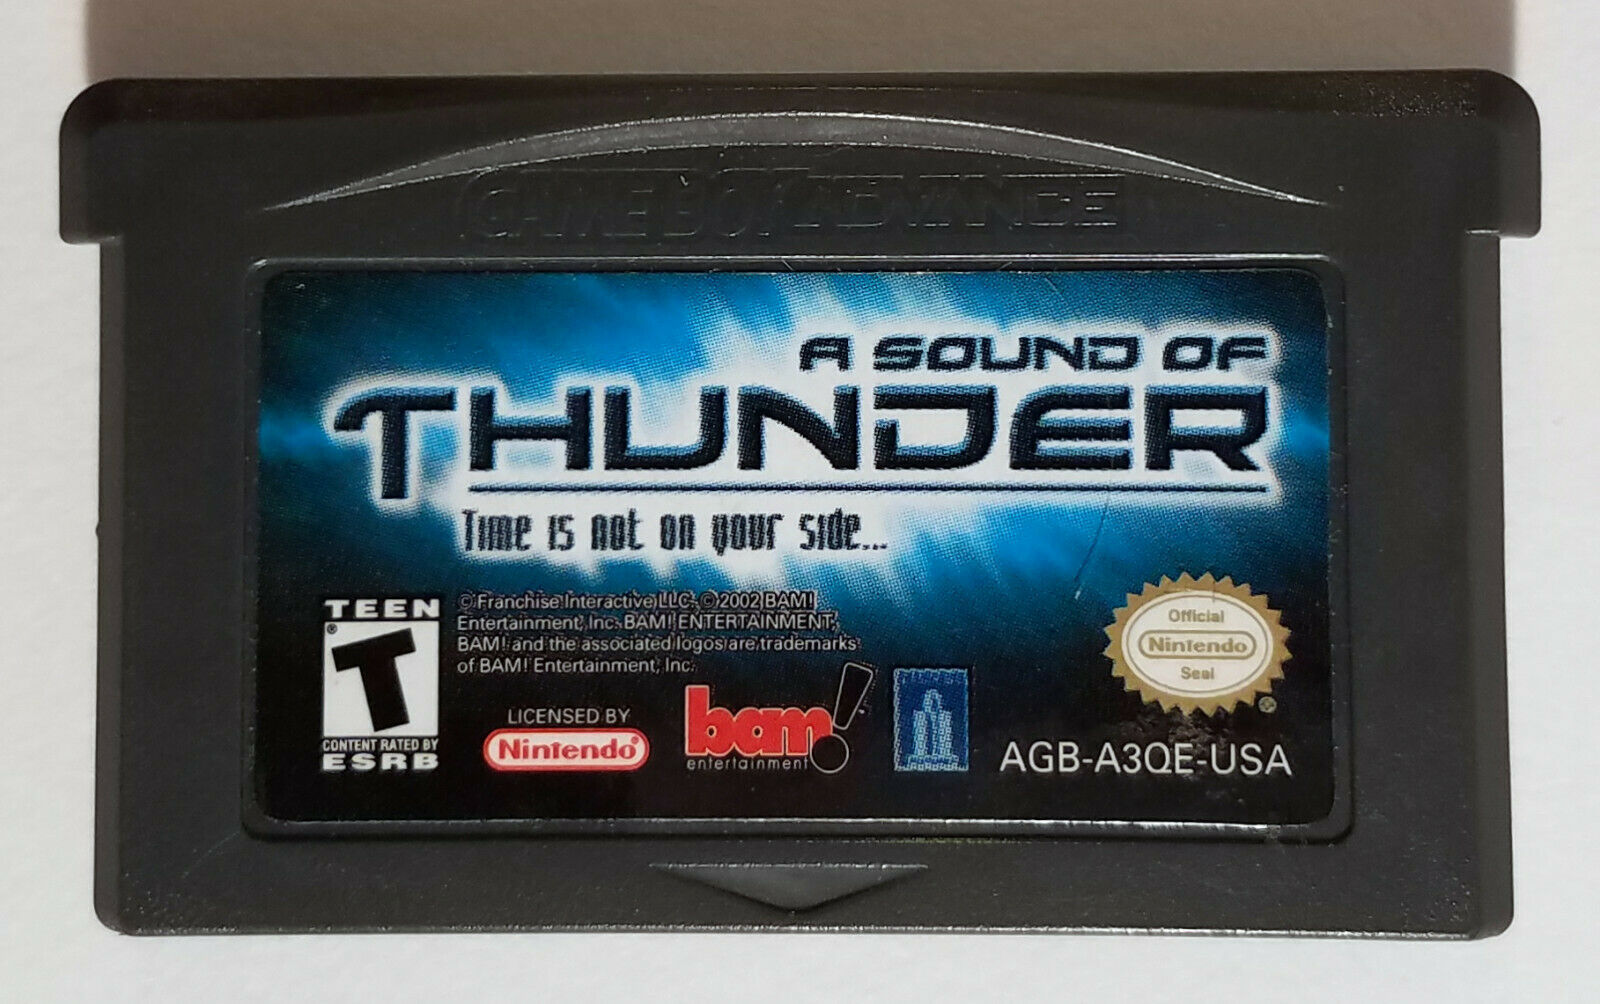 A Sound of Thunder Nintendo Game Boy Advance 2005 Cartridge Only